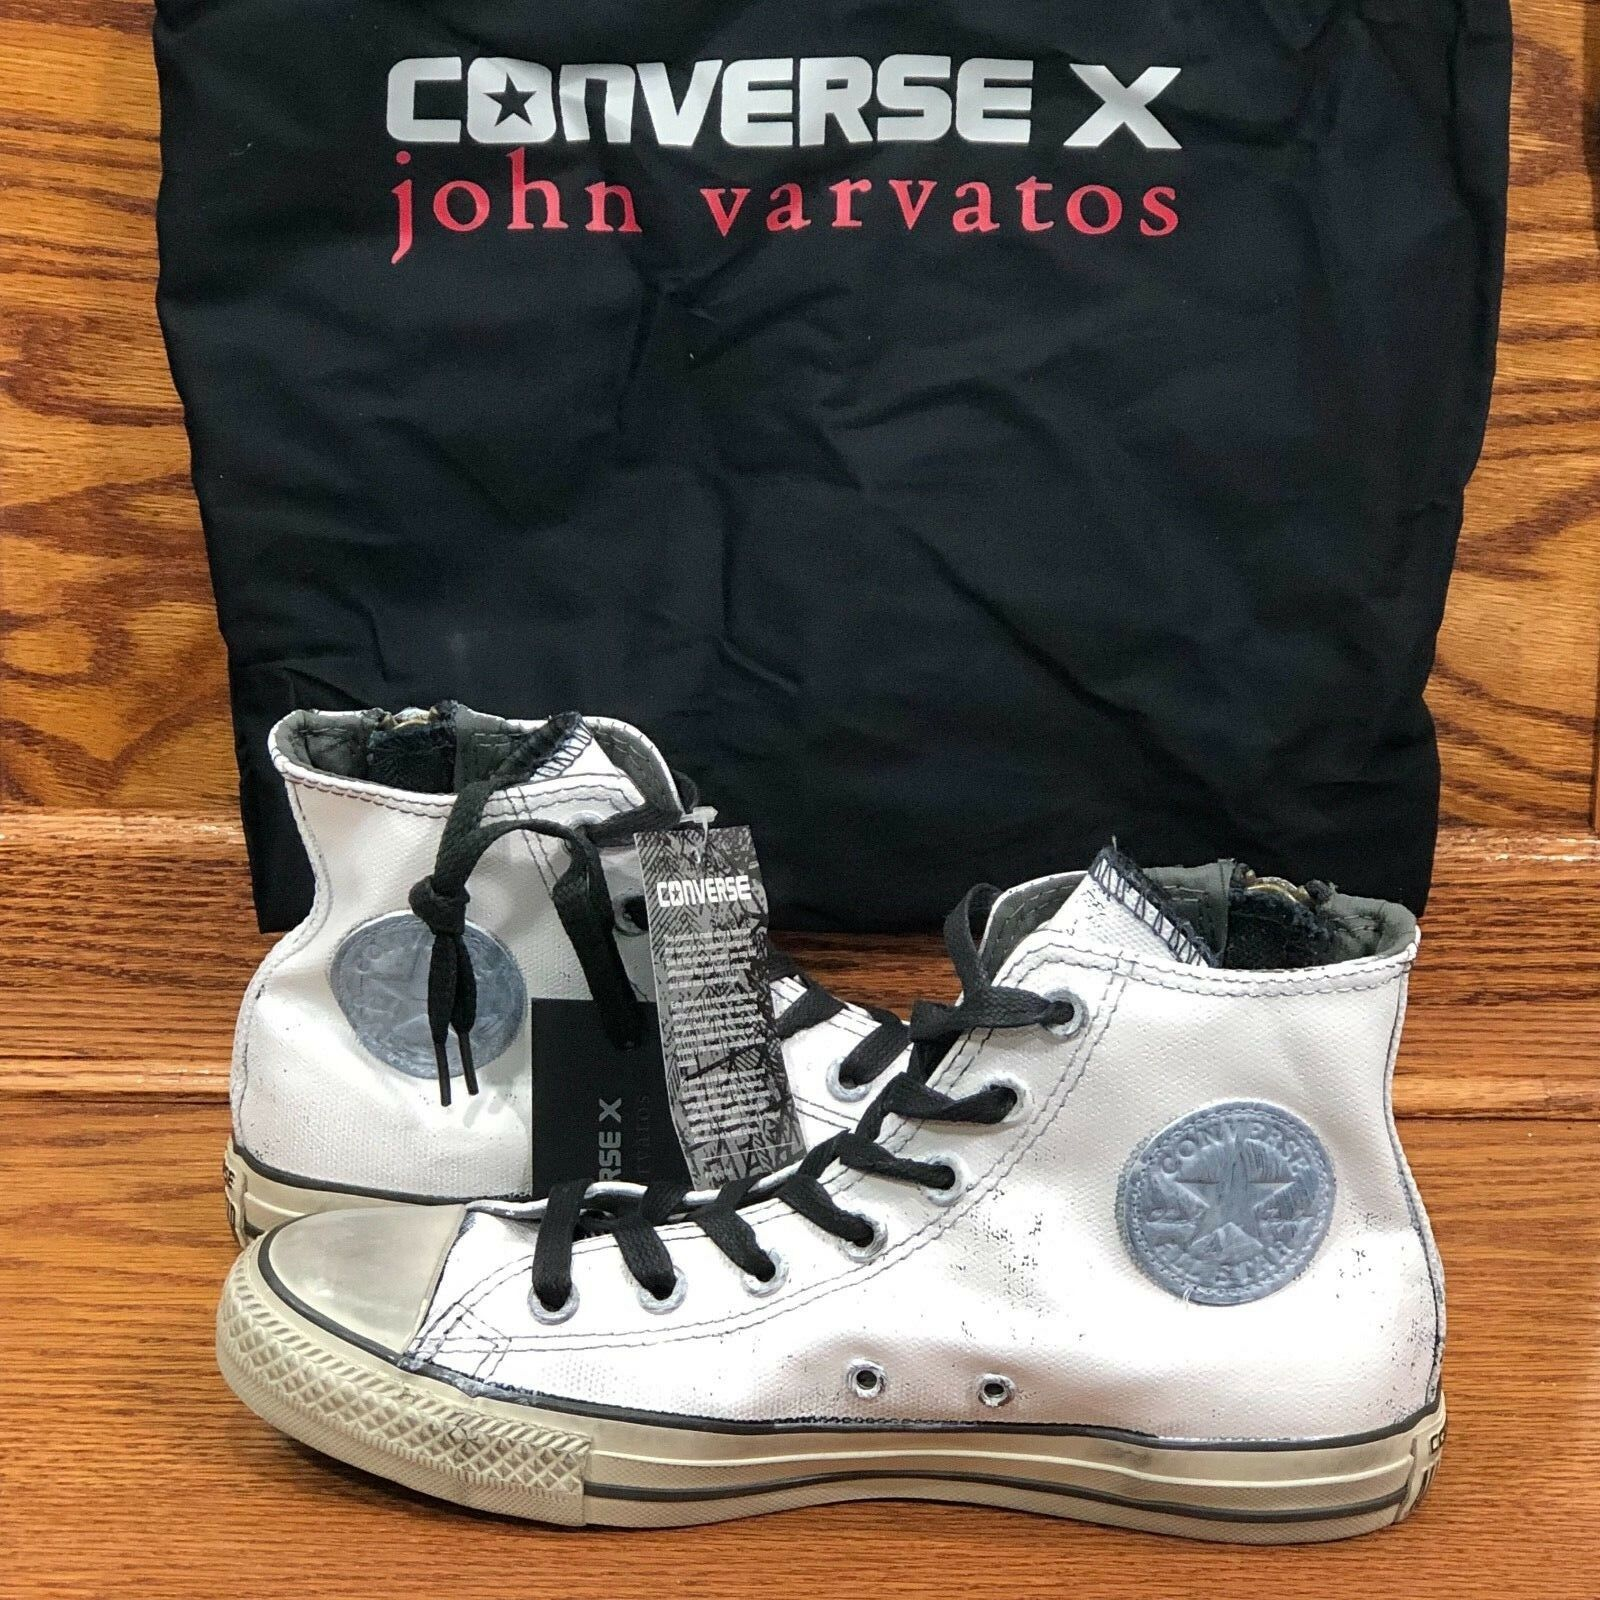 Converse CTAS John Varvatos Side Zip Black Beluga shoes Size Men 6 Women 8